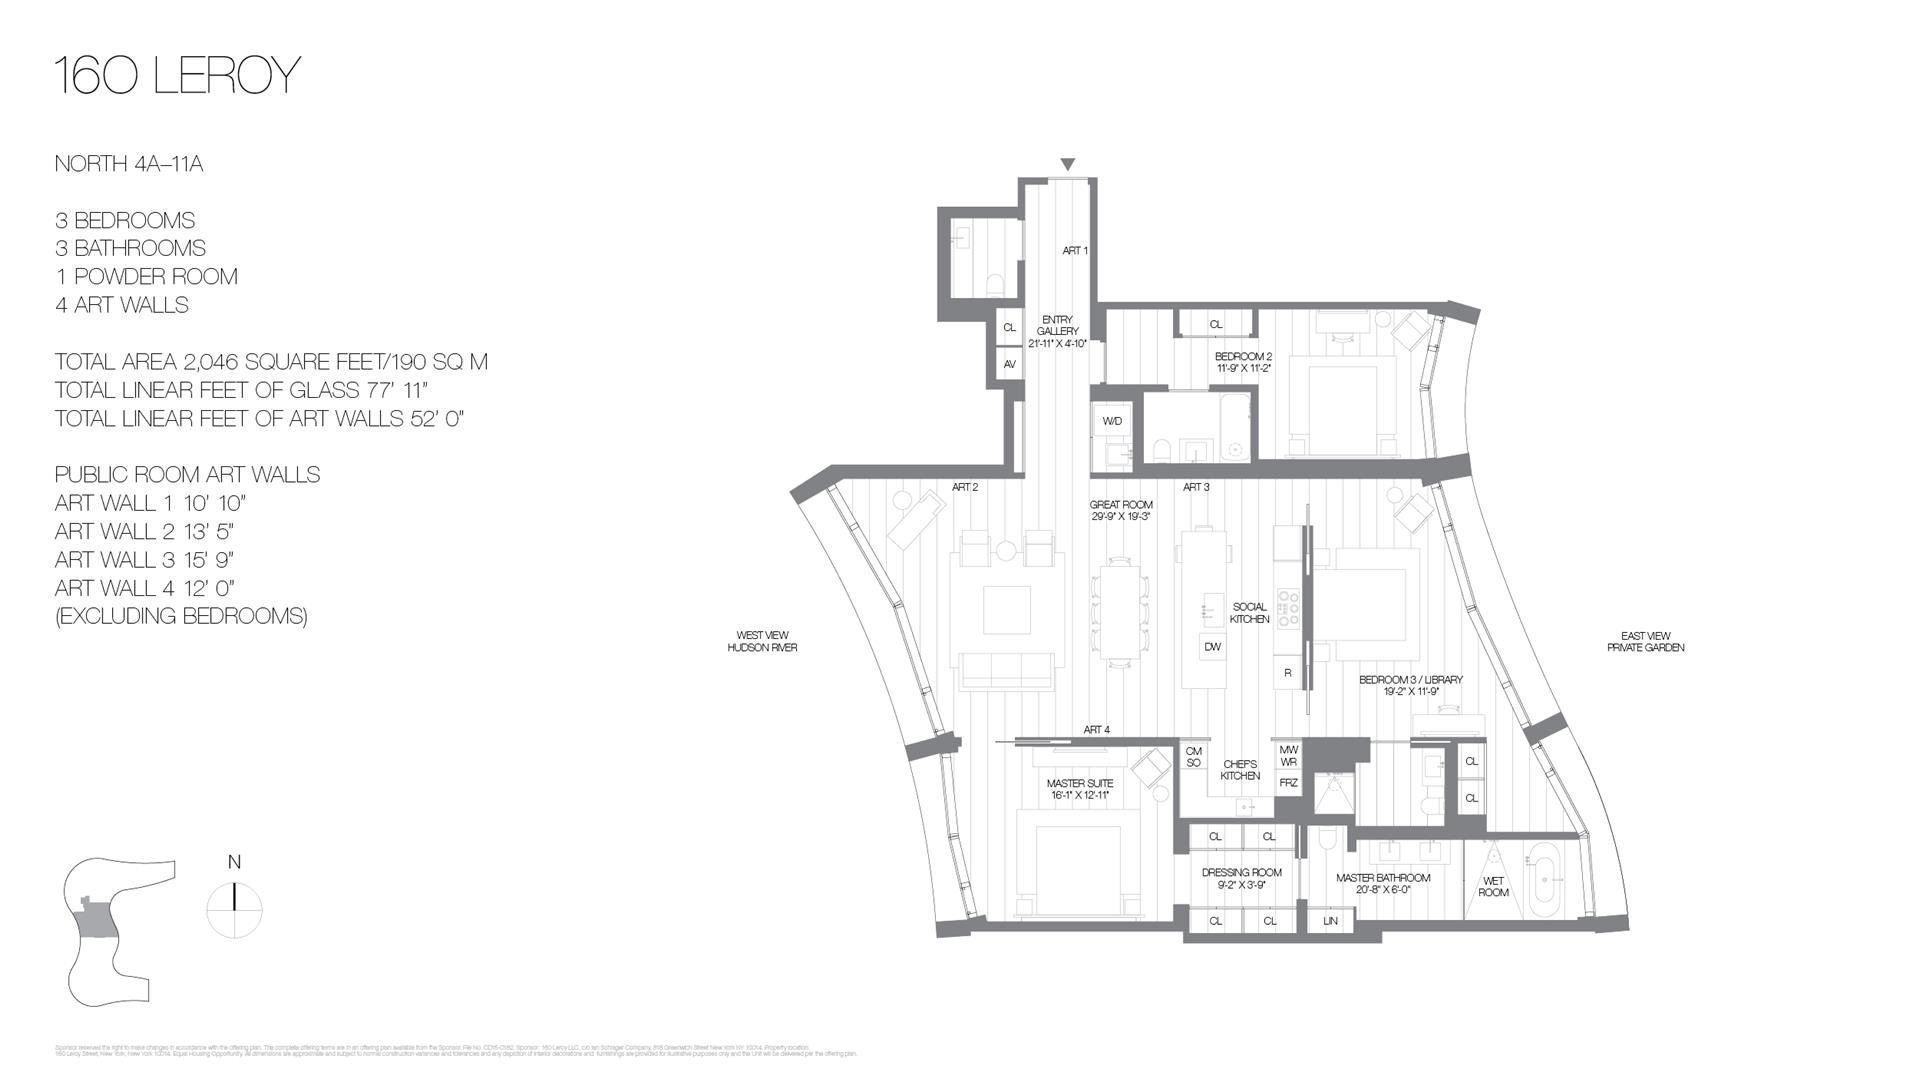 Floor plan of 160 Leroy St, NORTH10A - West Village - Meatpacking District, New York